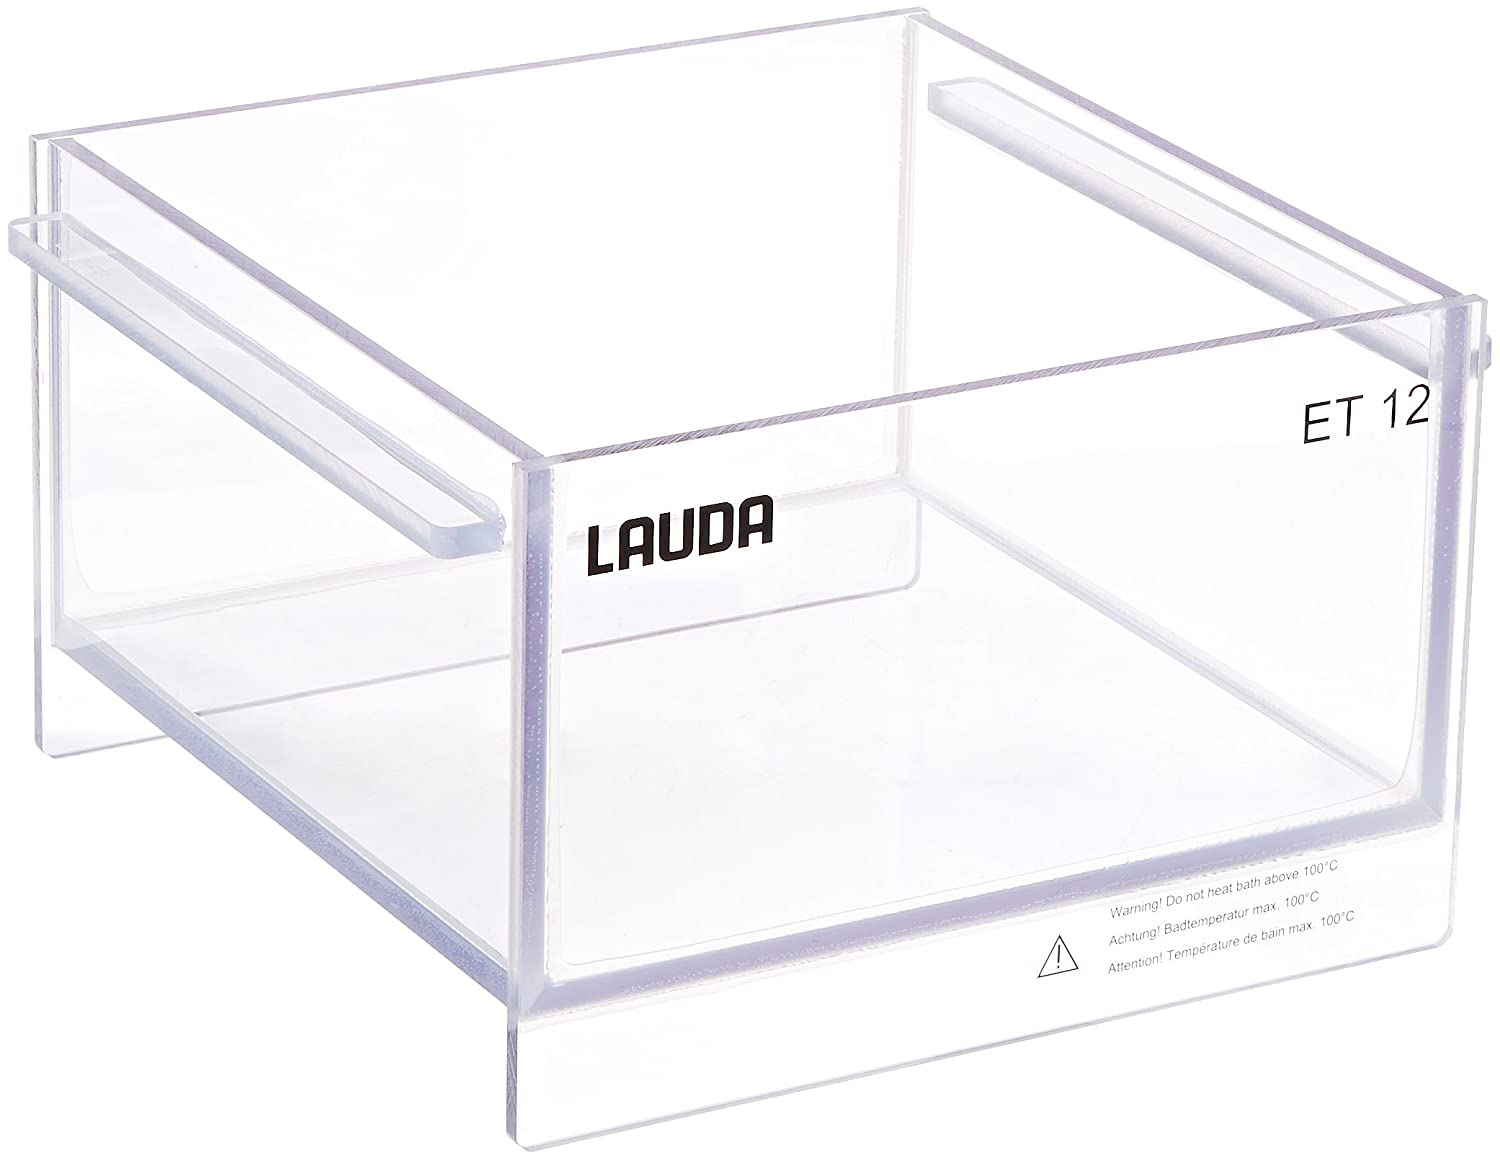 LAUDA LCZ 0704 Model ECO 12T Polycarbonate Transparent Bath for Immersion Thermostats Circulator Heater, 12L Capacity